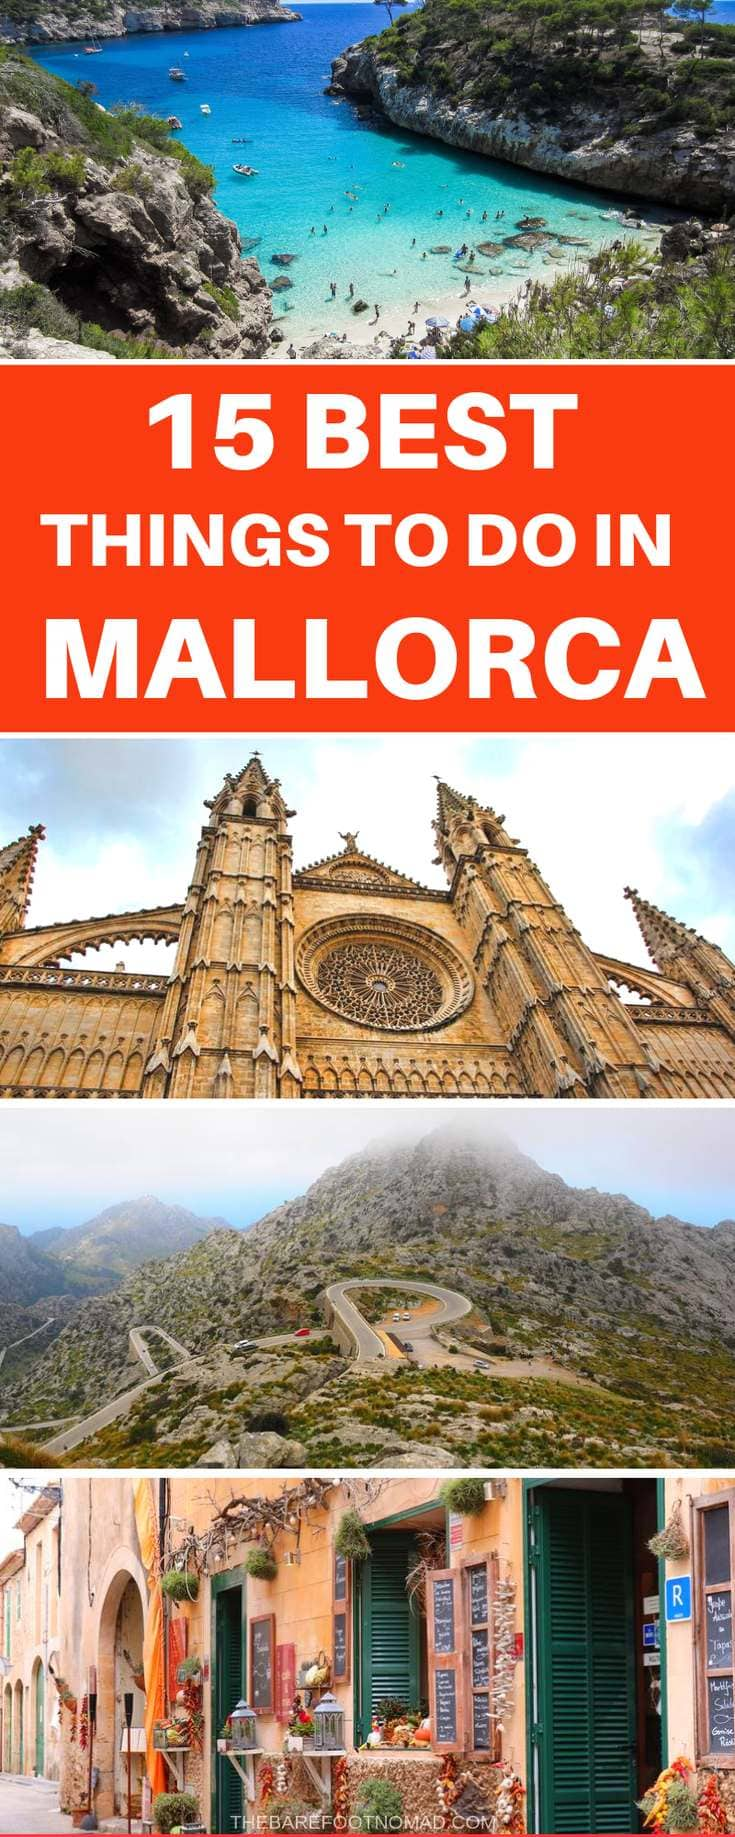 15 amazing things to do in Mallorca Spain